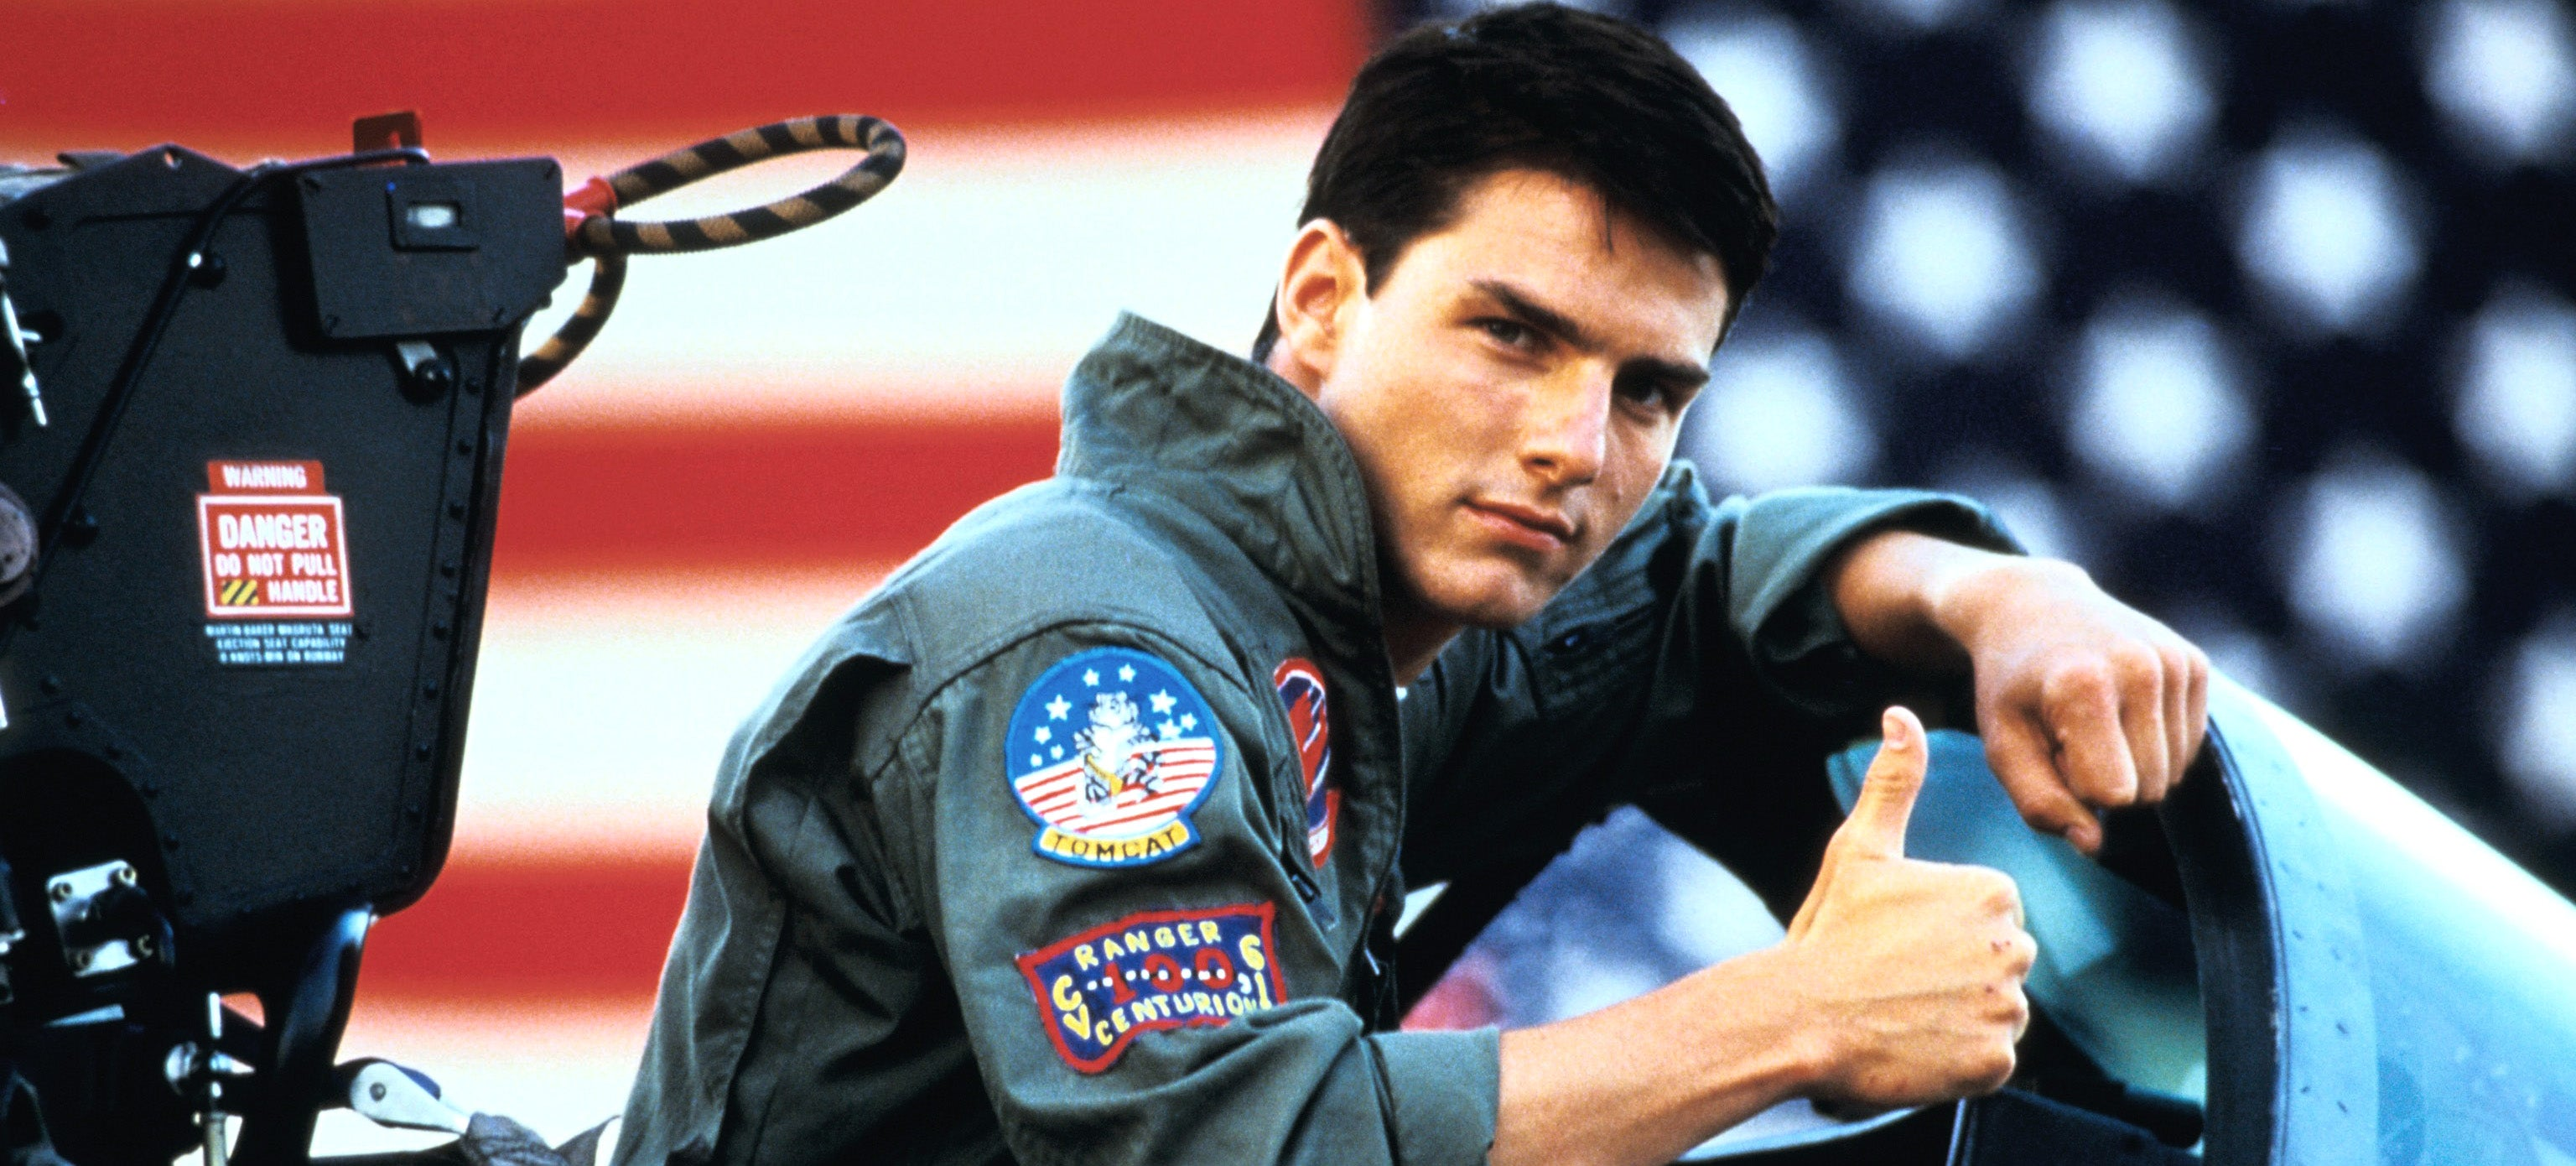 Brutally Honest Top Gun Trailer Shows How Ridiculous This Movie Is